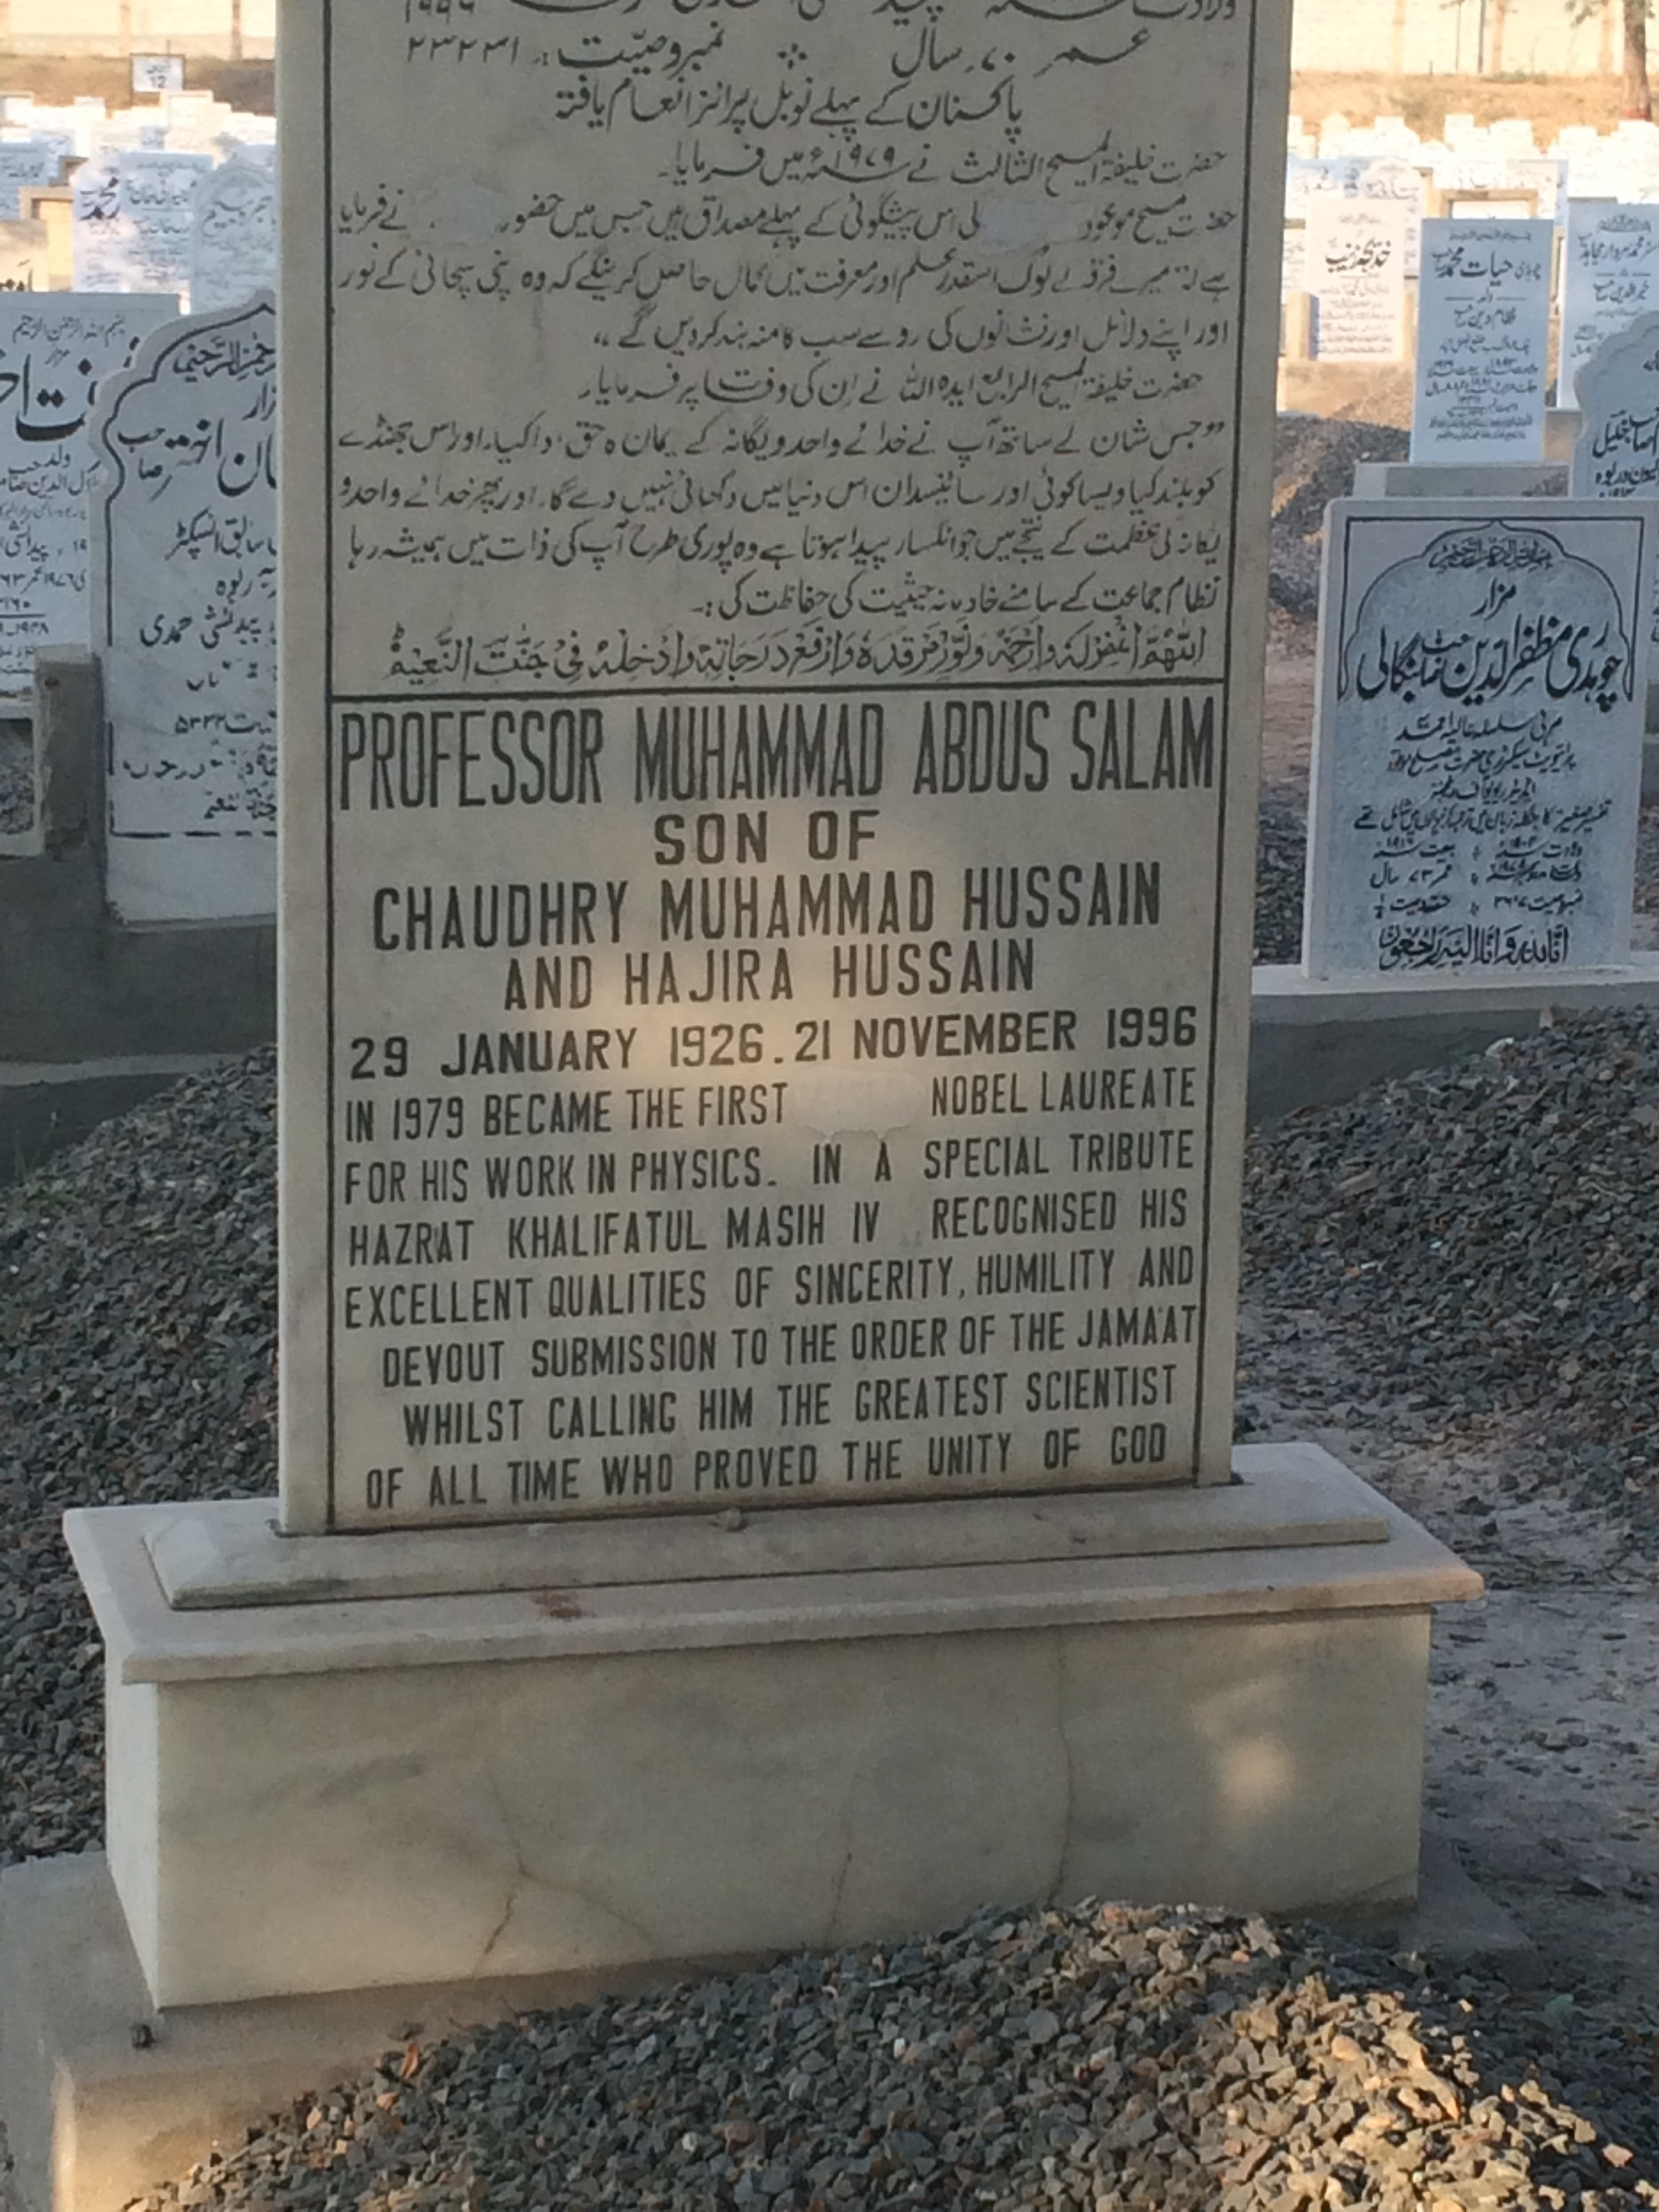 """We had the opportunity to visit Muhammad Abdus Salam's grave in Rabwah, and when I took a closer look, I saw where the government had whited out the word, """"Muslim"""". Even in death, he can't call himself that."""